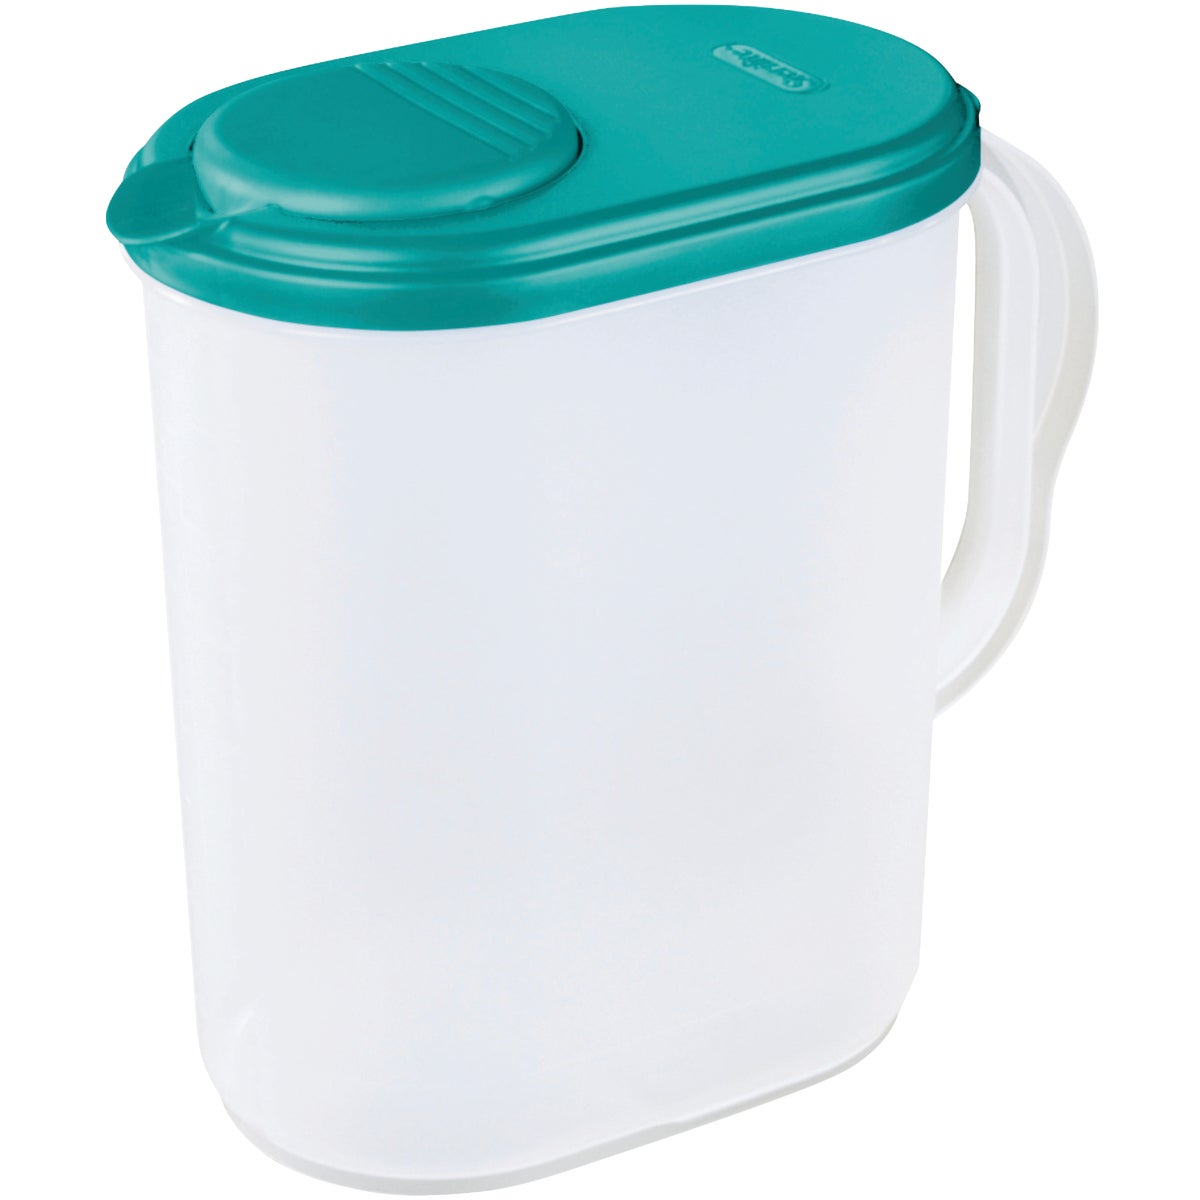 1 GALLON PITCHER - 04904106 by Sterilite Corp